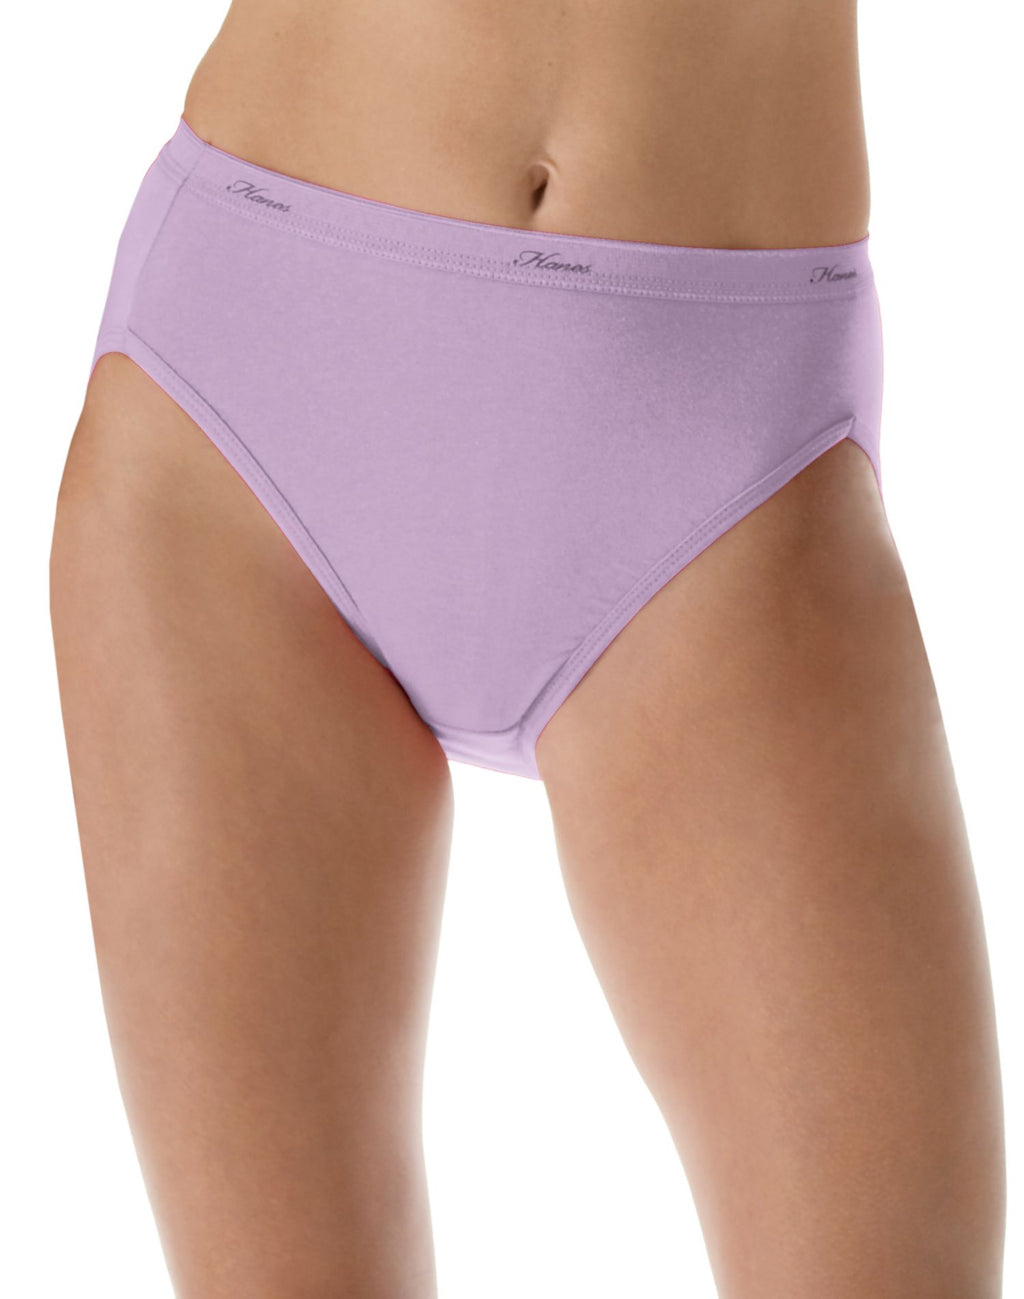 Hanes Womens Cool Comfort Cotton 8-Pack Hi-Cut Panties